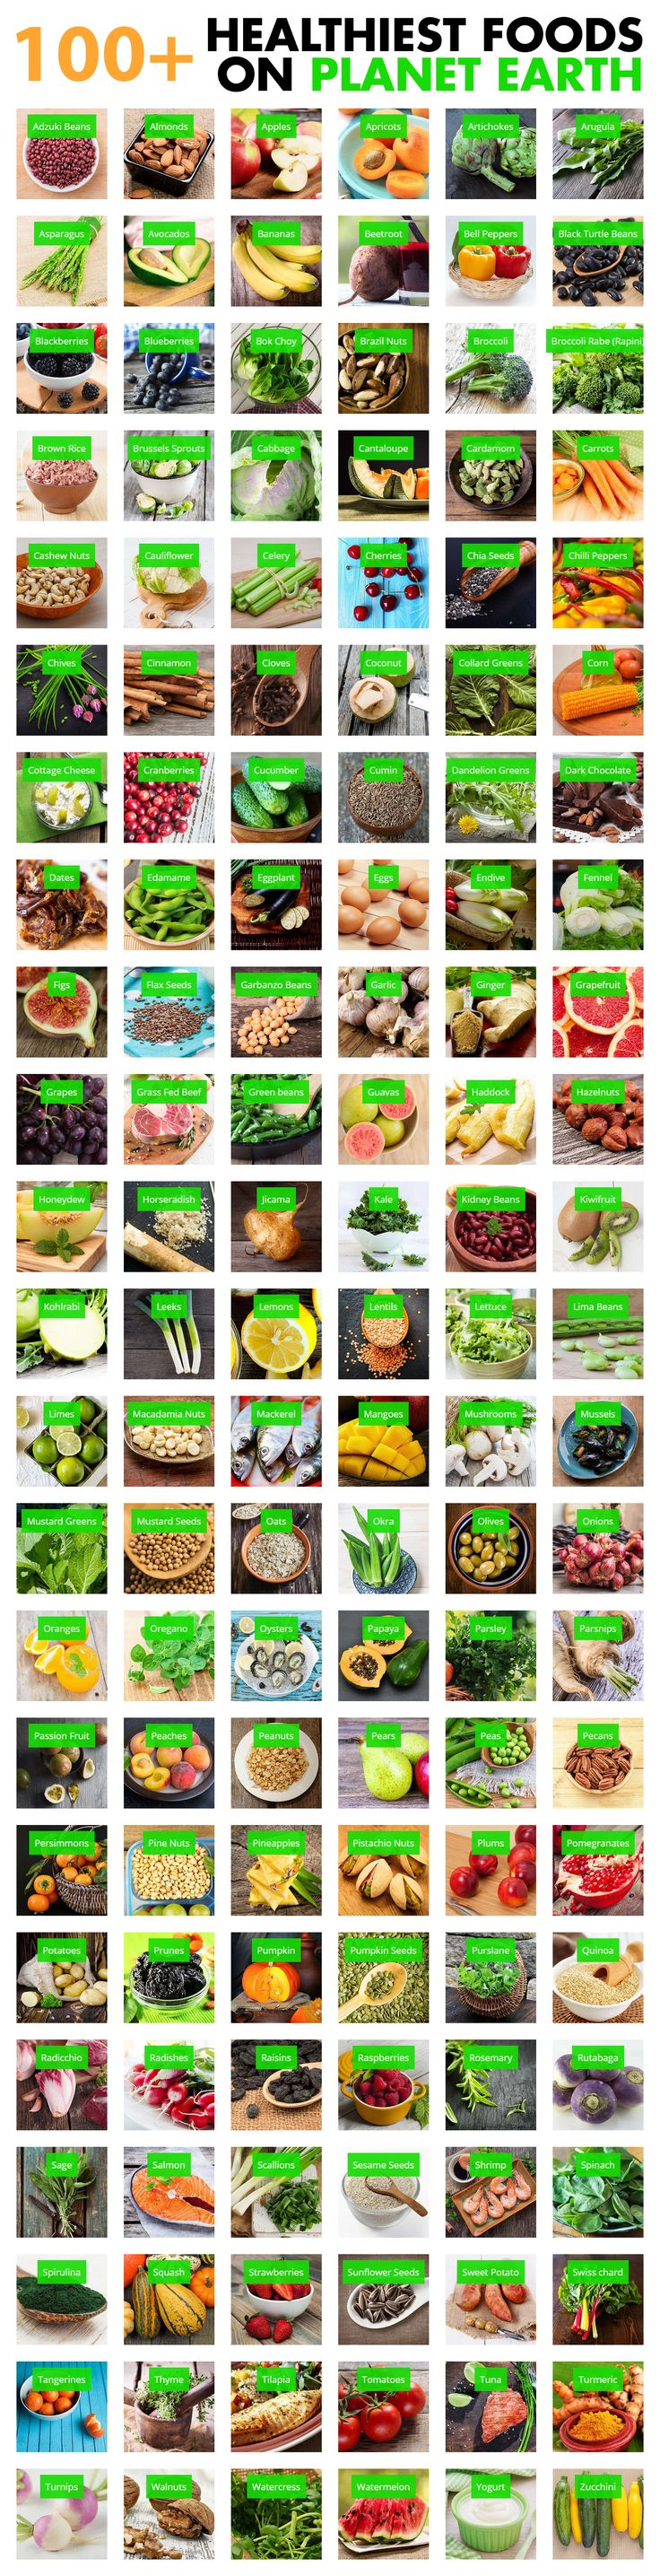 Use our healthy food finder and discover some new nutritious foods to add to your diet.  You can use the tool to sort and filter foods based on different criteria. Give it a try!